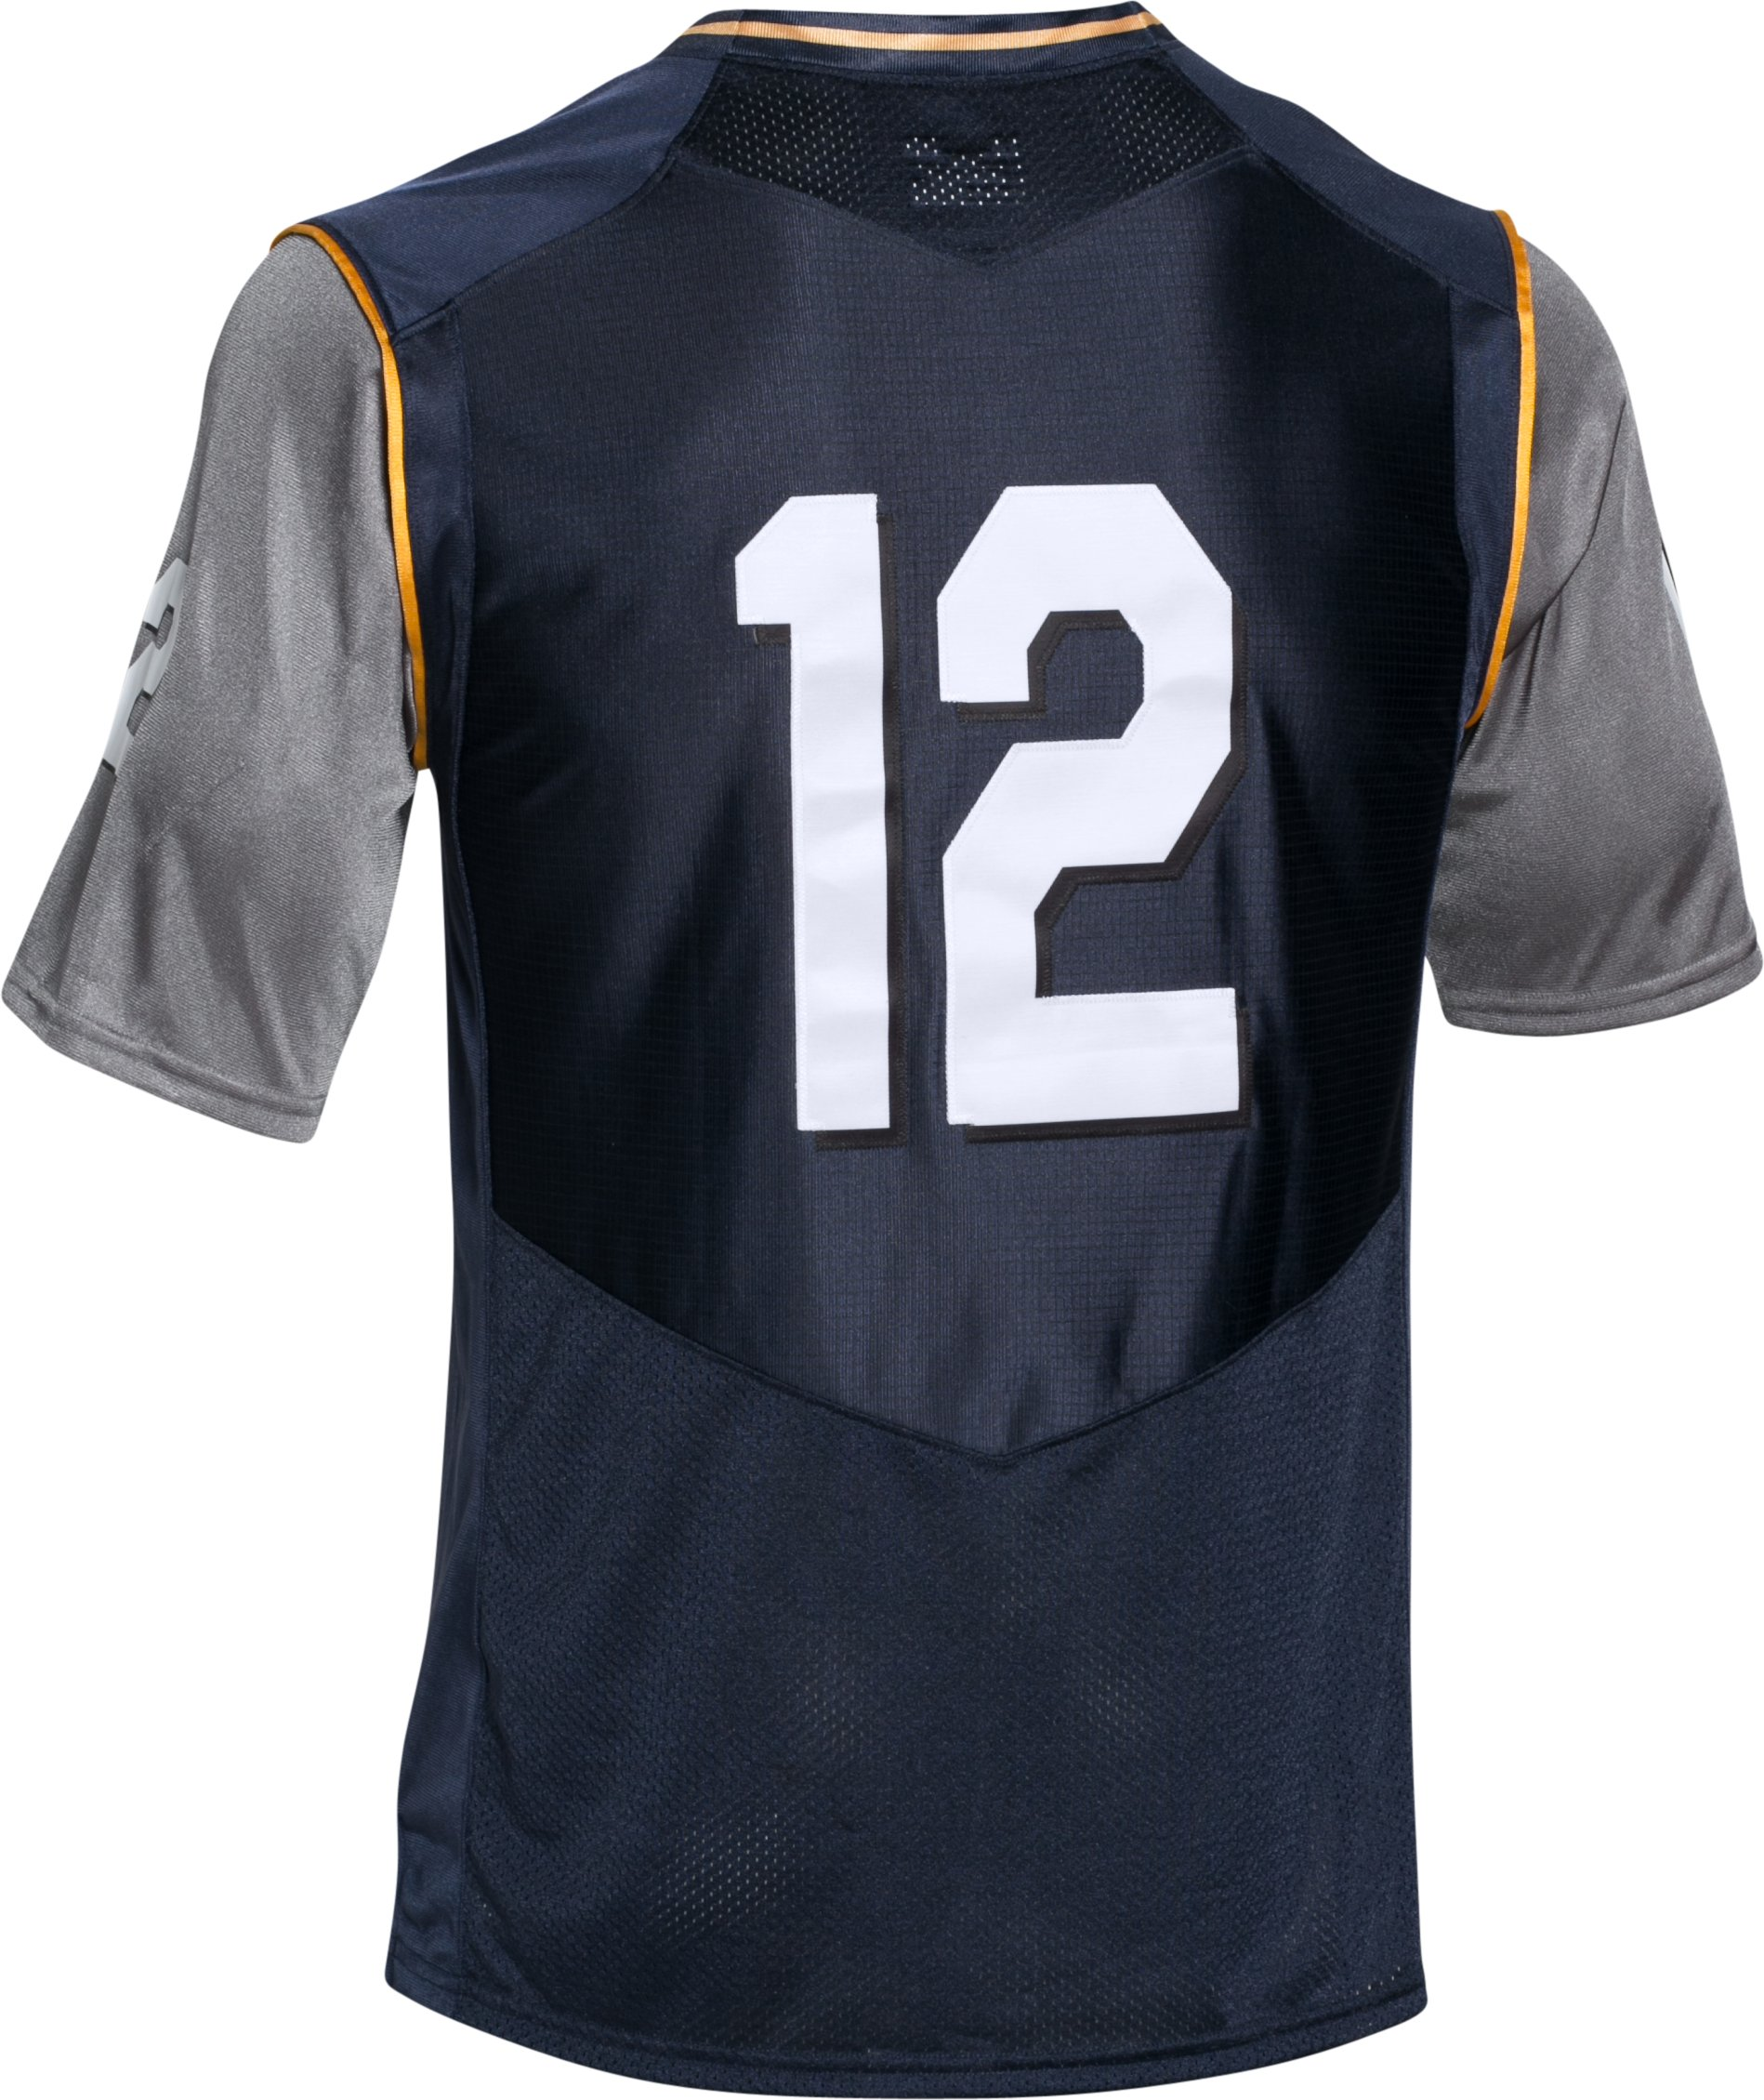 Men's Navy UA Damn The Torpedoes Premier Jersey, Midnight Navy